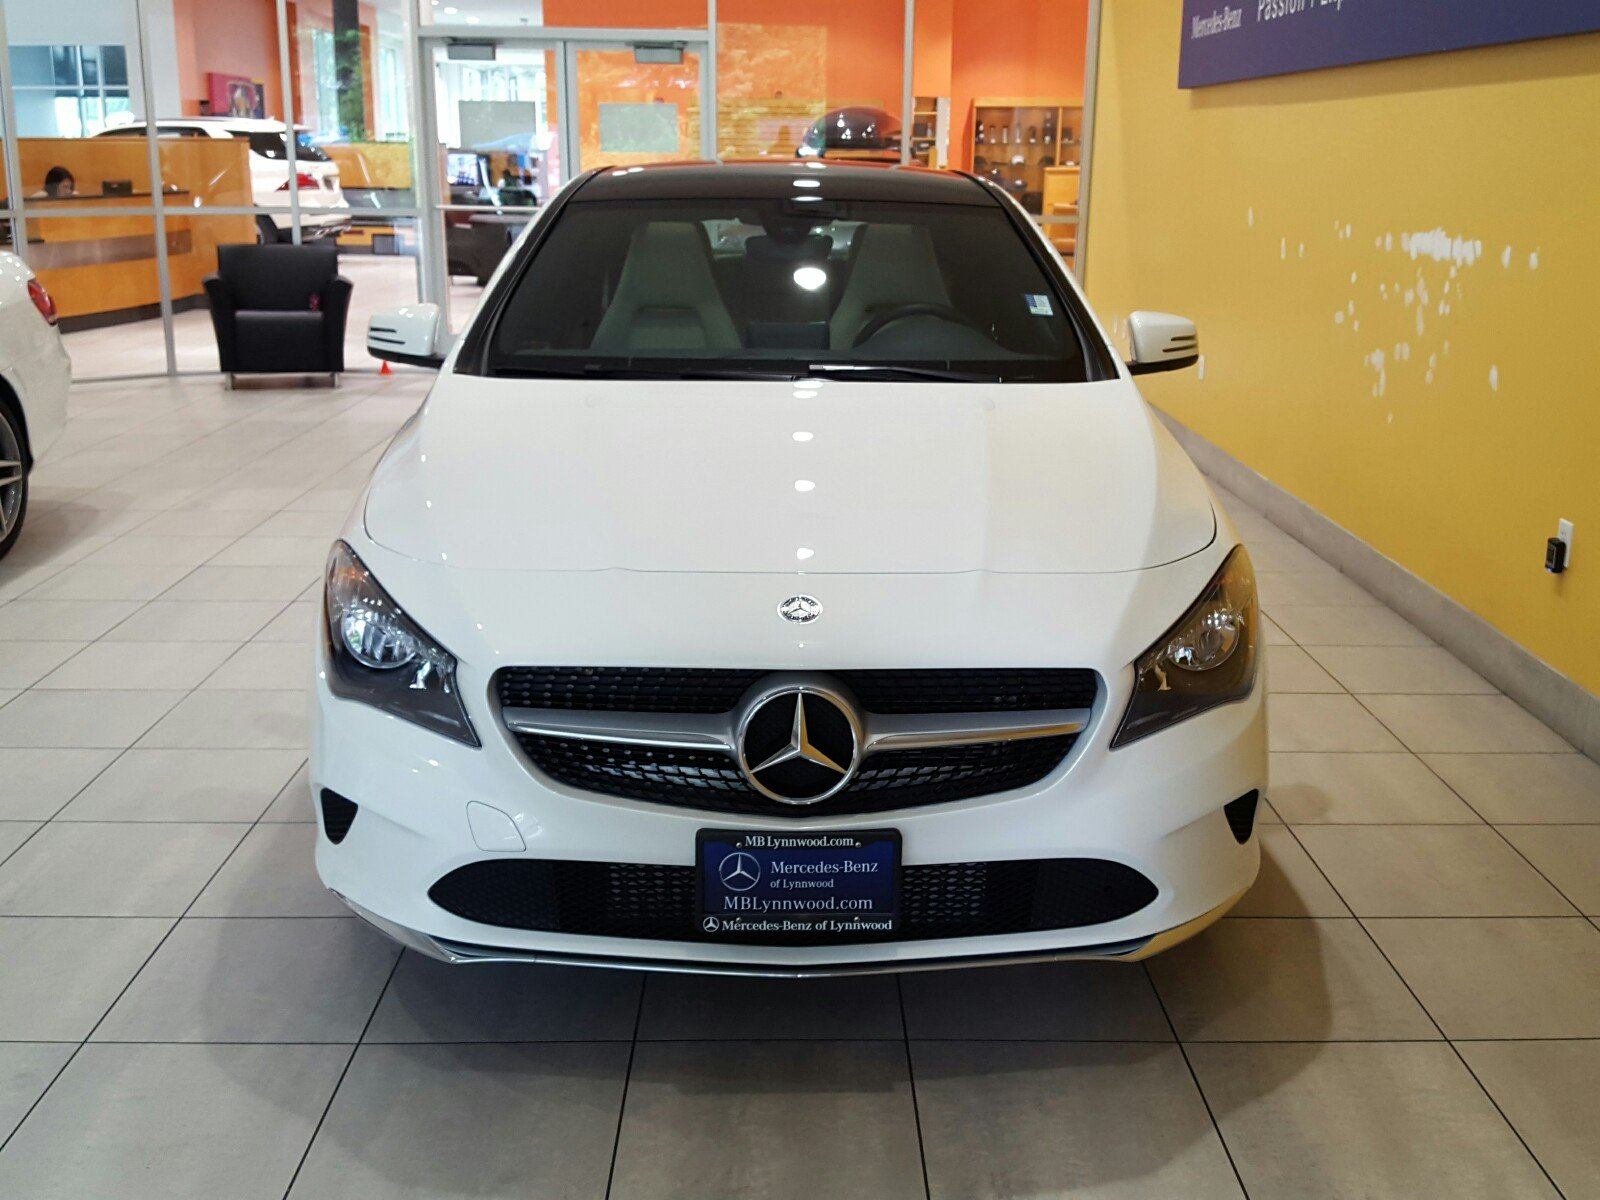 Pre owned 2017 mercedes benz cla cla 250 4matic coupe in for Mercedes benz cla coupe 2017